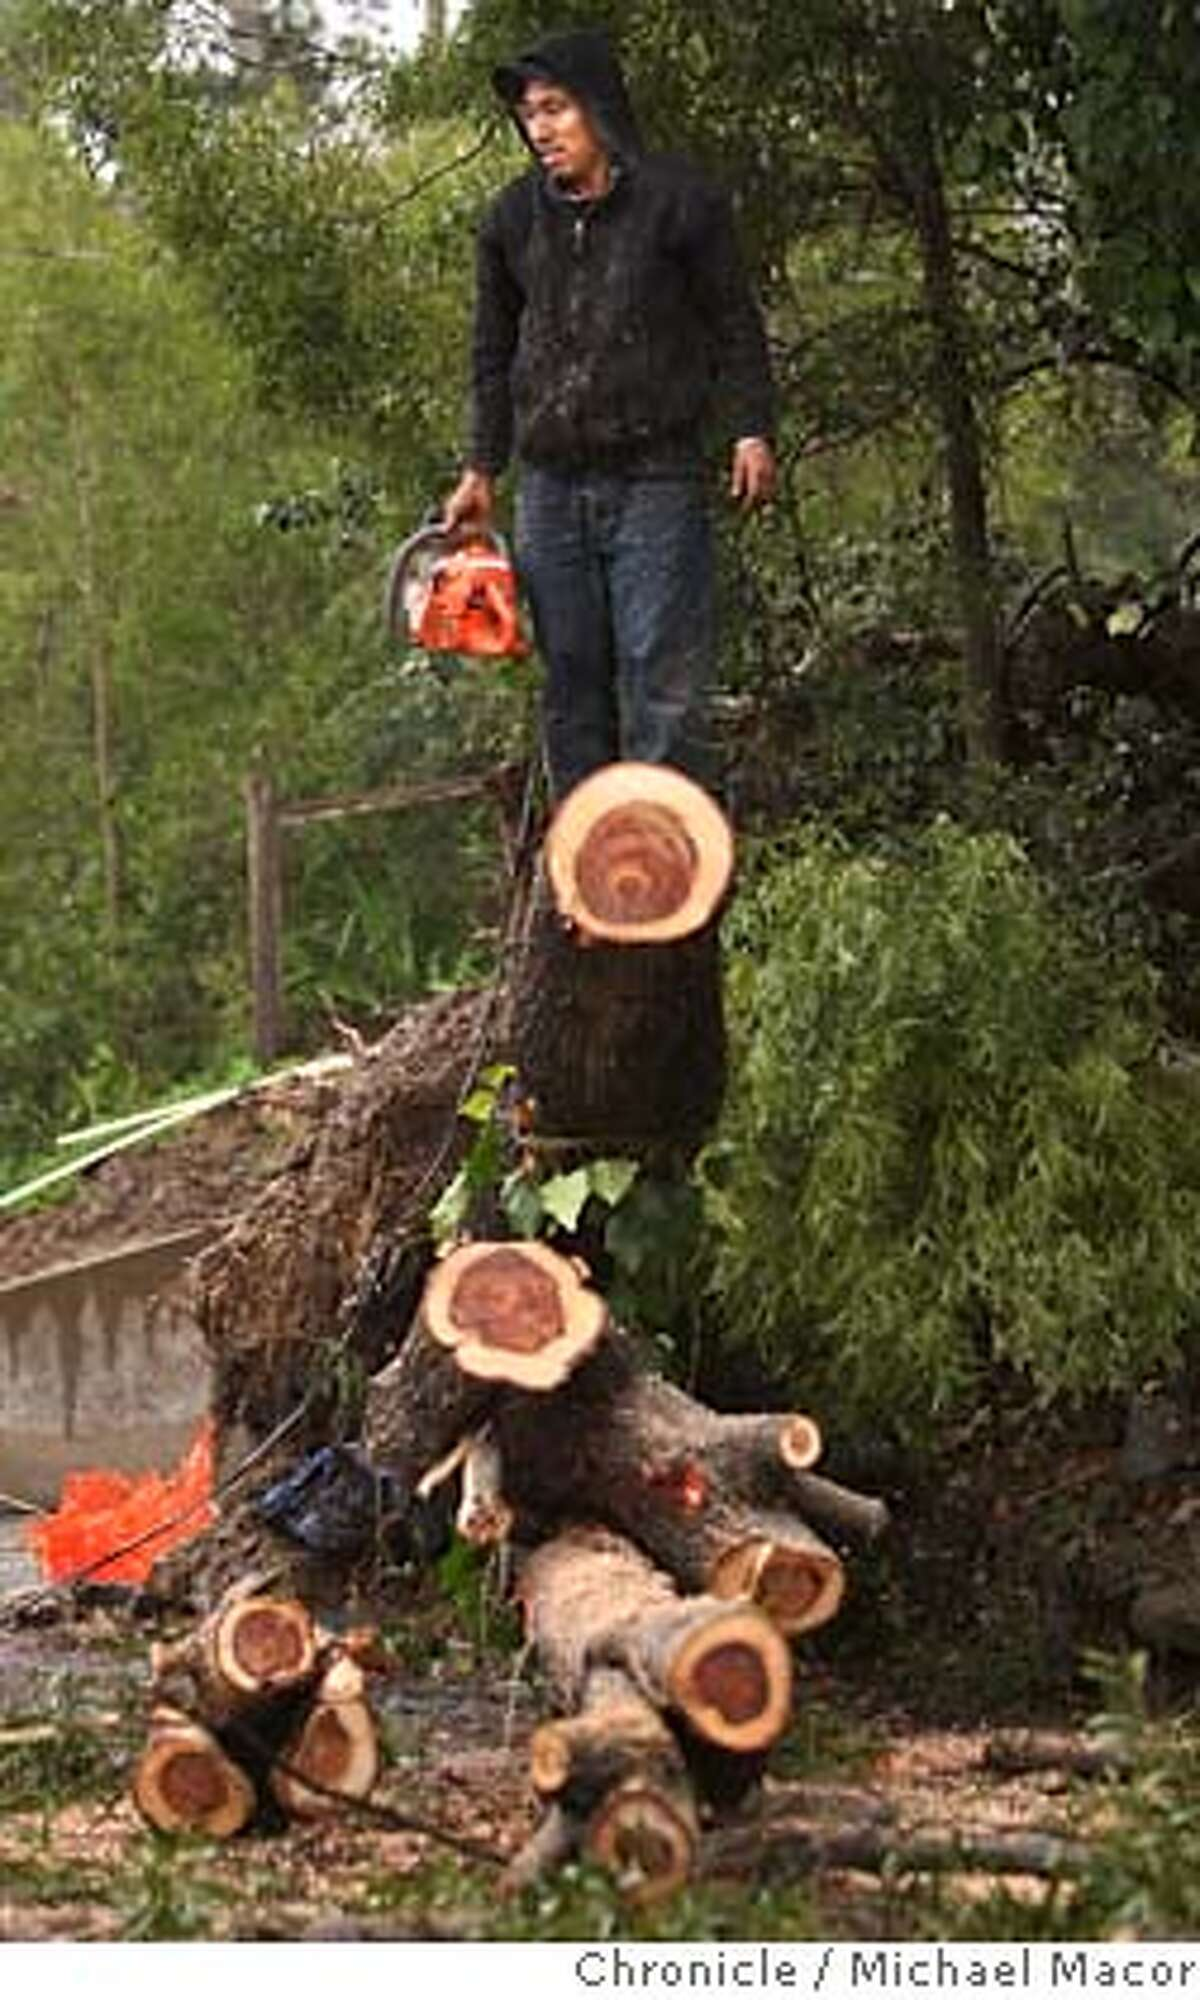 weather05_nbay_185_mac.jpg Pedro Diaz works to clear a tree the fell yesterday blocking the roadway near the intersection of Homestead Blvd. and Gomez Way, in Mill Valley. The third storm to hit the Bay area began this morning as the work to clean up from yesterday's hugh hit began. Photo by: Michael Macor / The Chronicle Taken on 1/5/08, in Mill Valley, CA, USA MANDATORY CREDIT FOR PHOTOG AND SAN FRANCISCO CHRONICLE/NO SALES-MAGS OUT